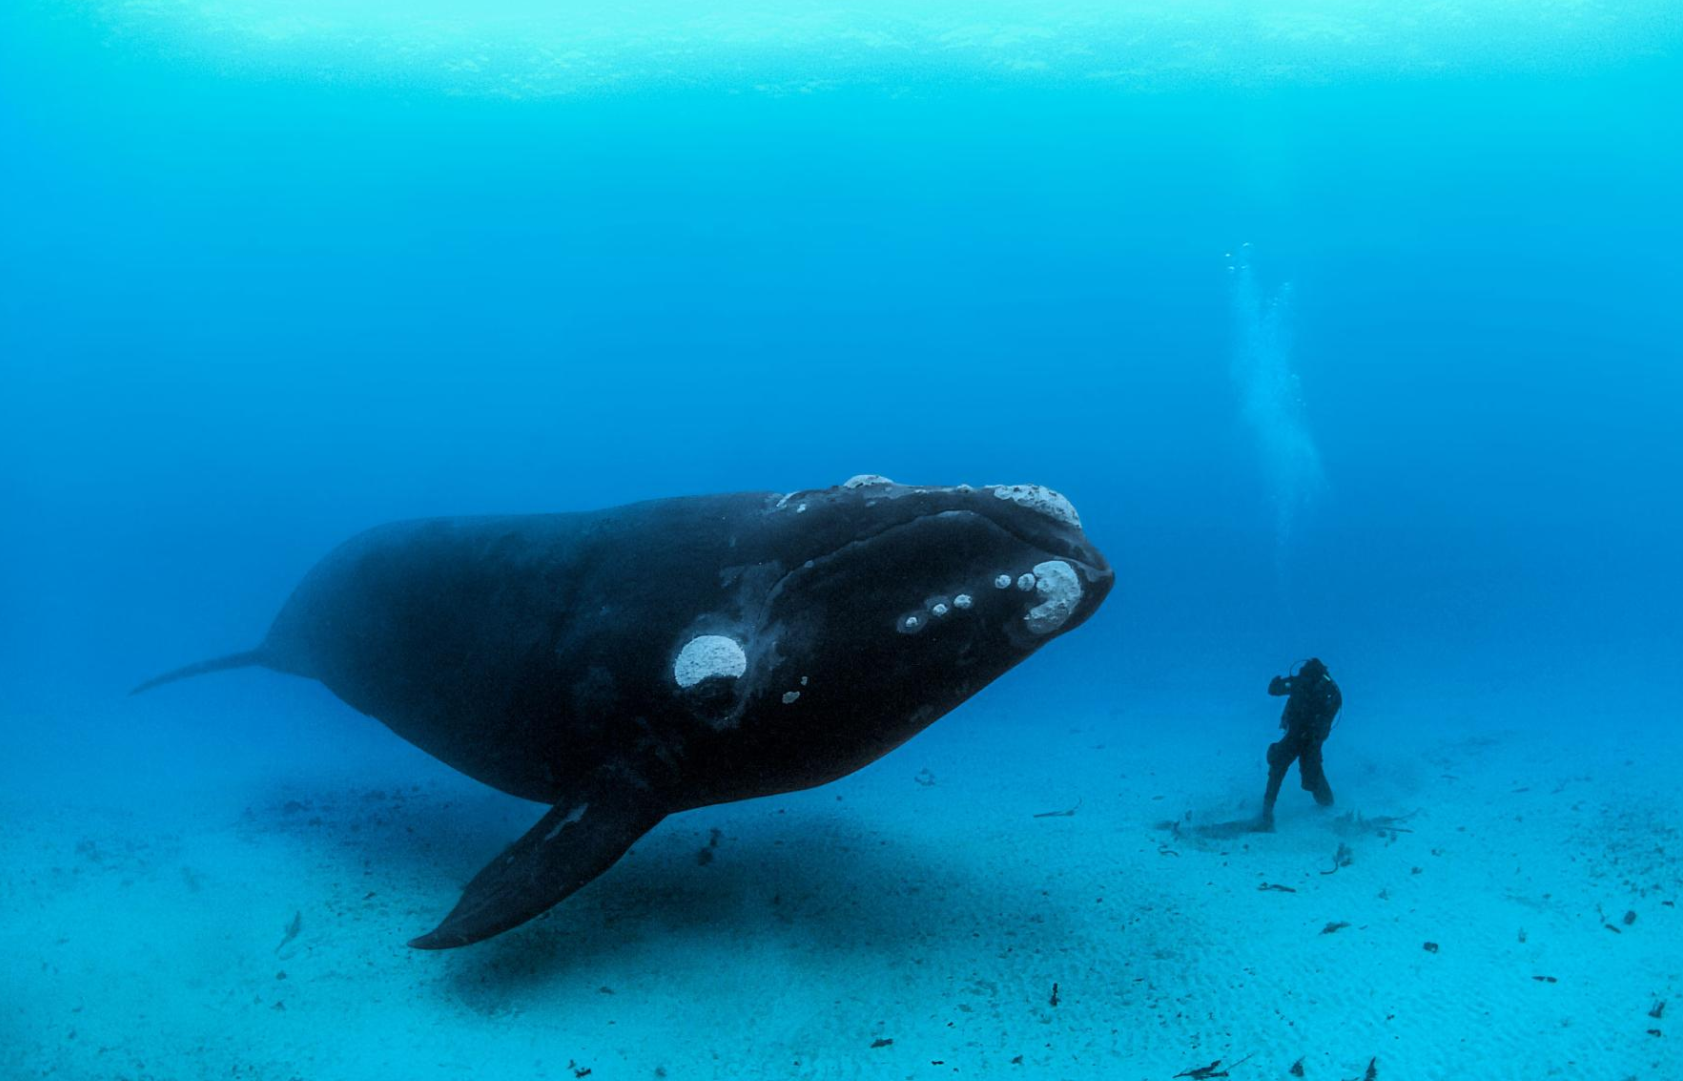 A southern right whale encounters a diver on the sandy sea bottom off the Auckland Islands, New Zealand. Adults can reach lengths of 55 feet and weigh up to 60 tons.